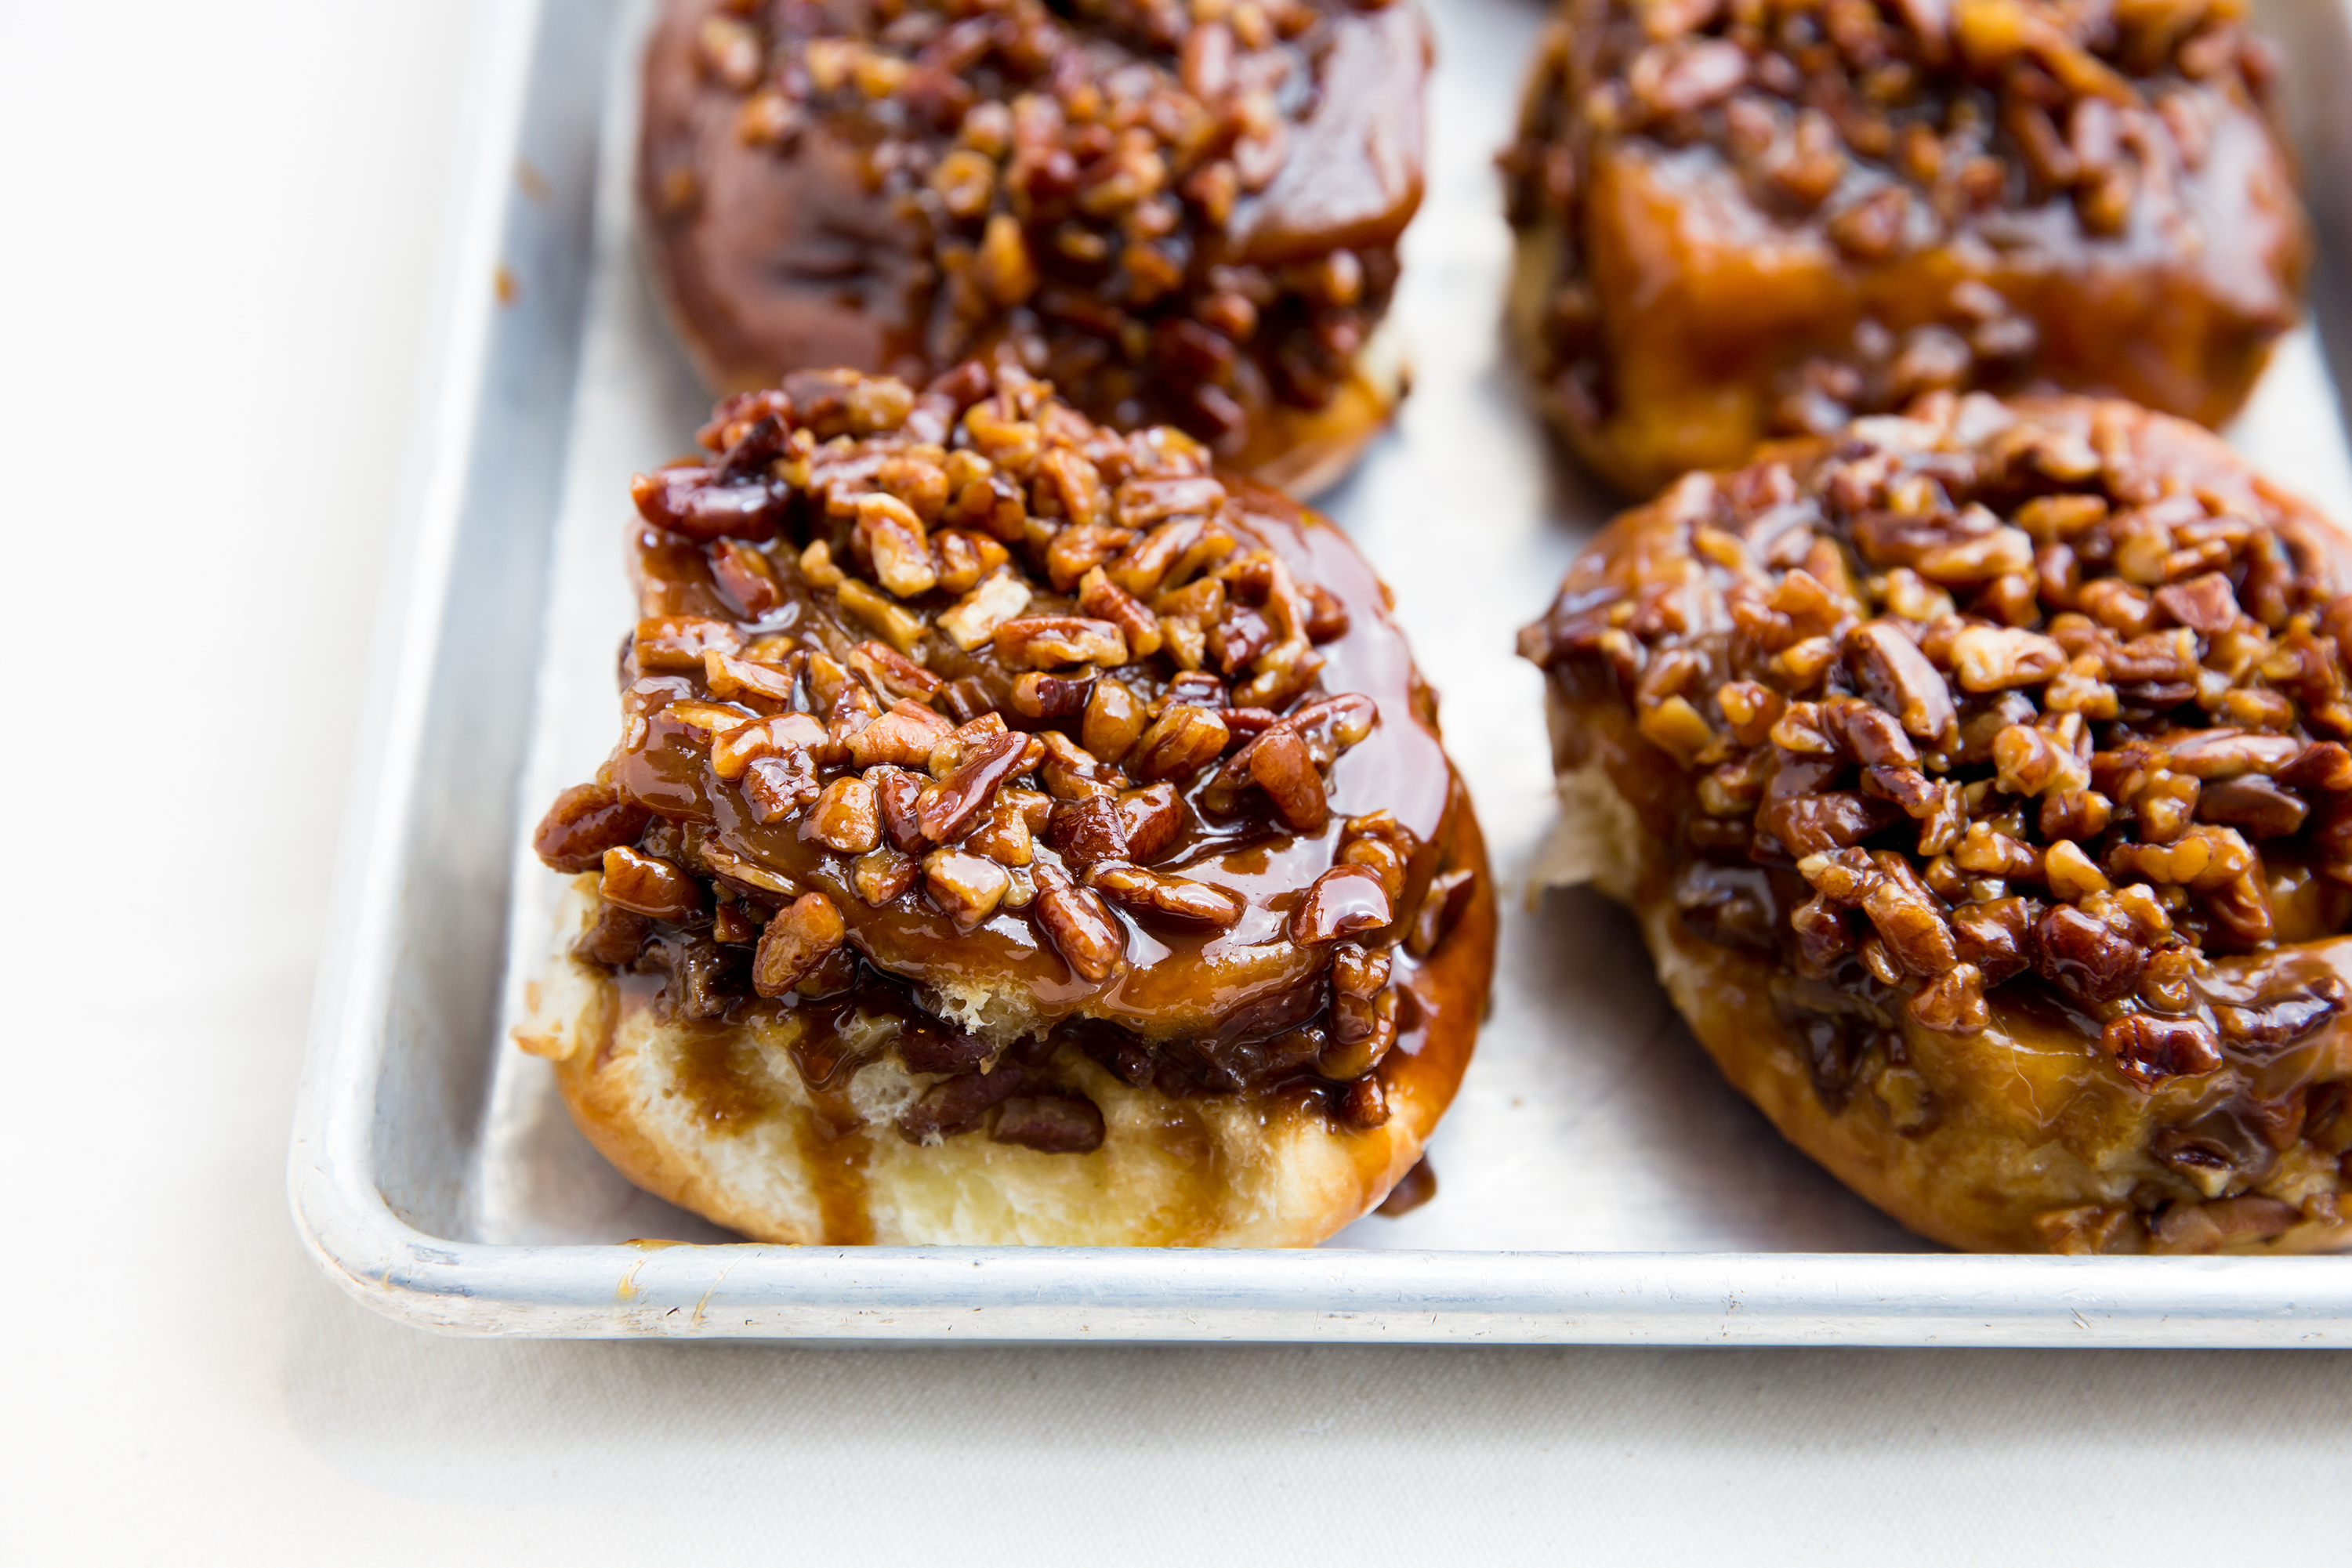 A pan with pecan-covered sticky buns